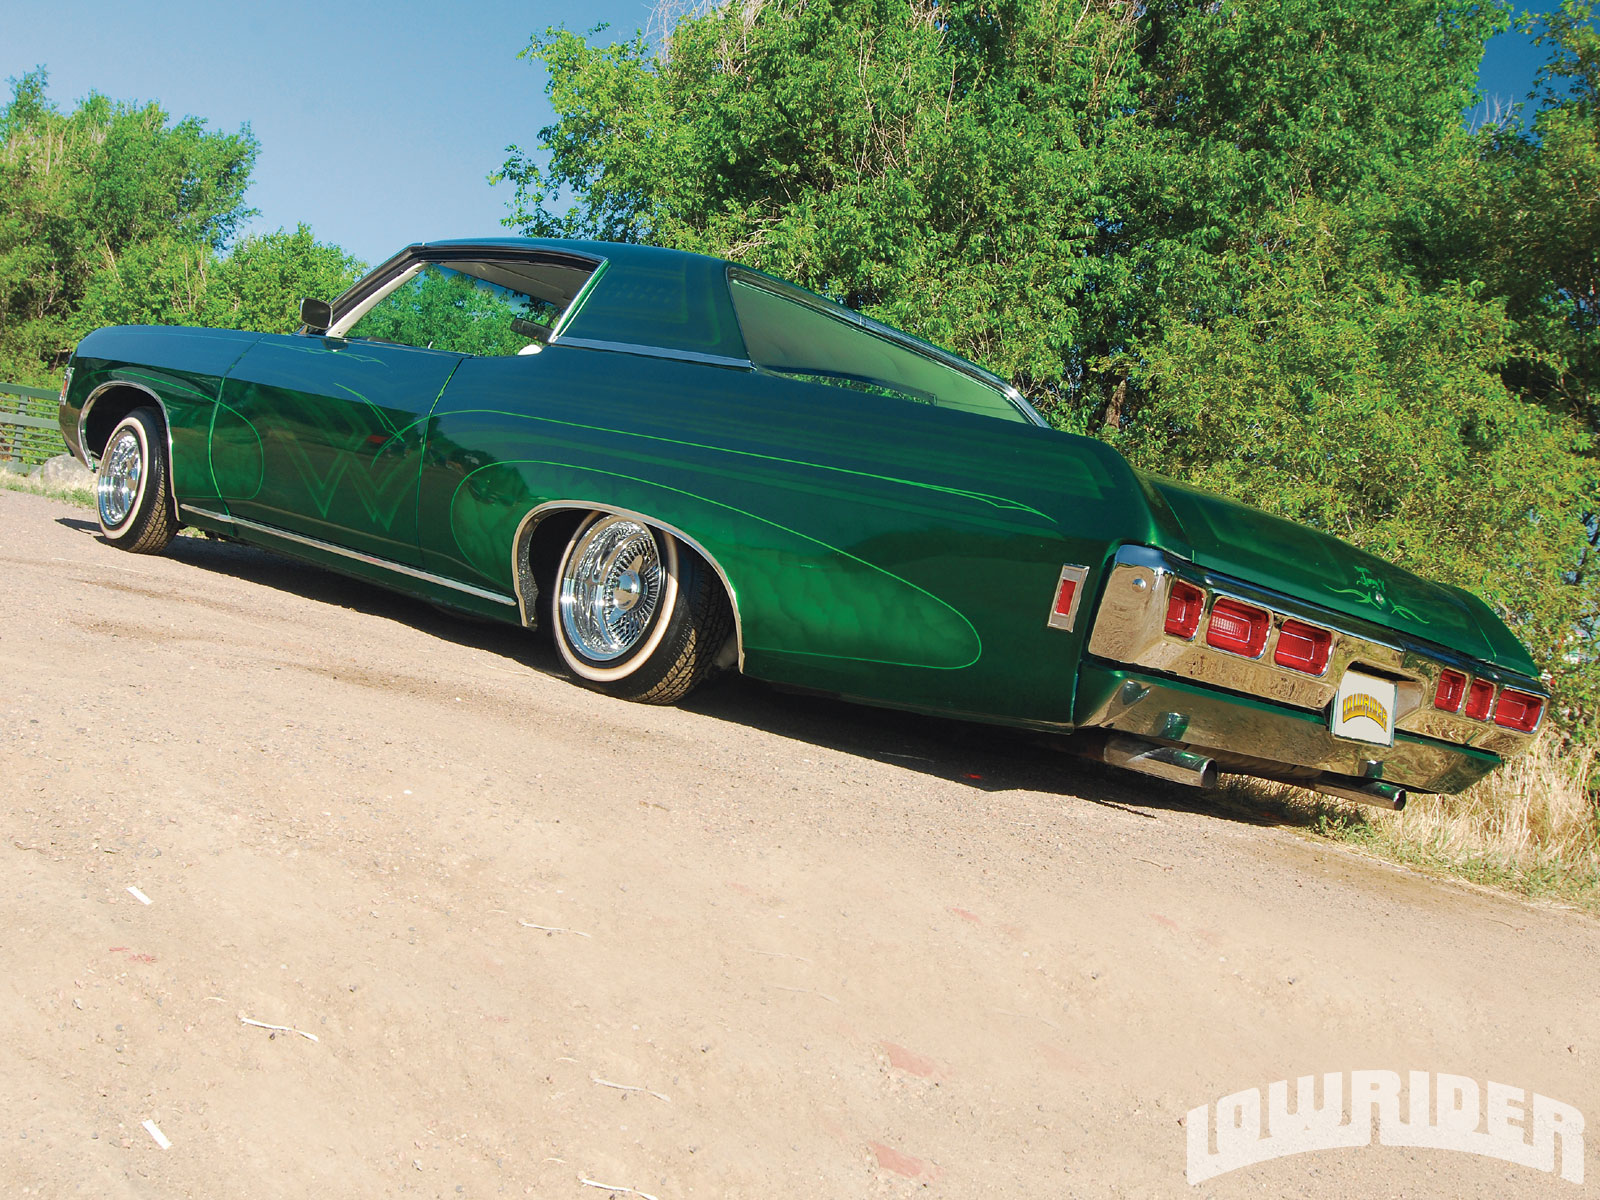 Superb 1969 Chevrolet Impala Lowrider Magazine Gmtry Best Dining Table And Chair Ideas Images Gmtryco